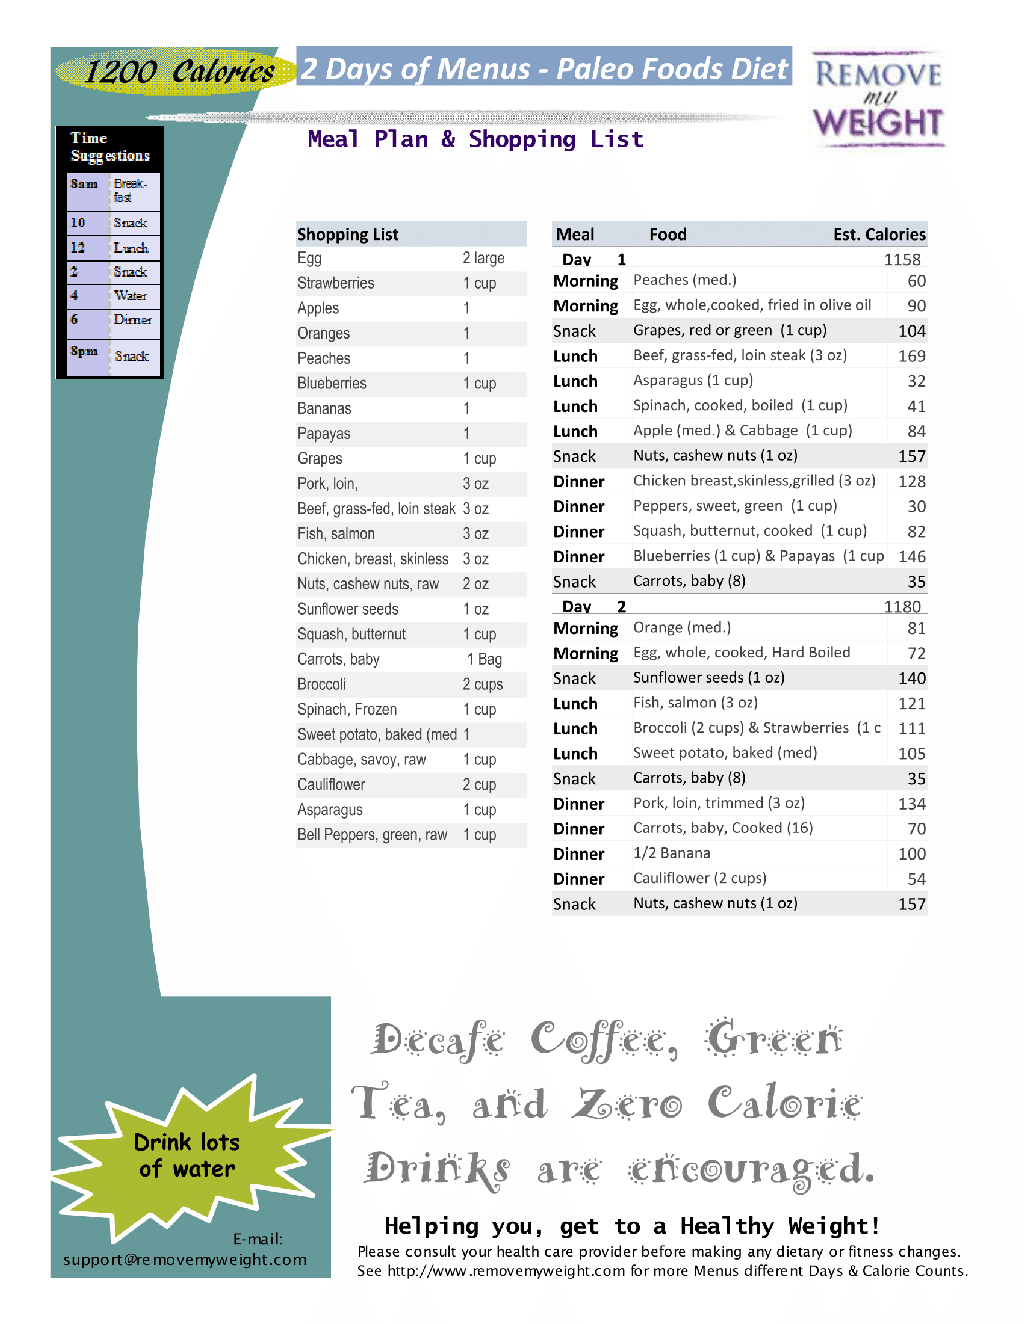 Sample weight loss diet menu